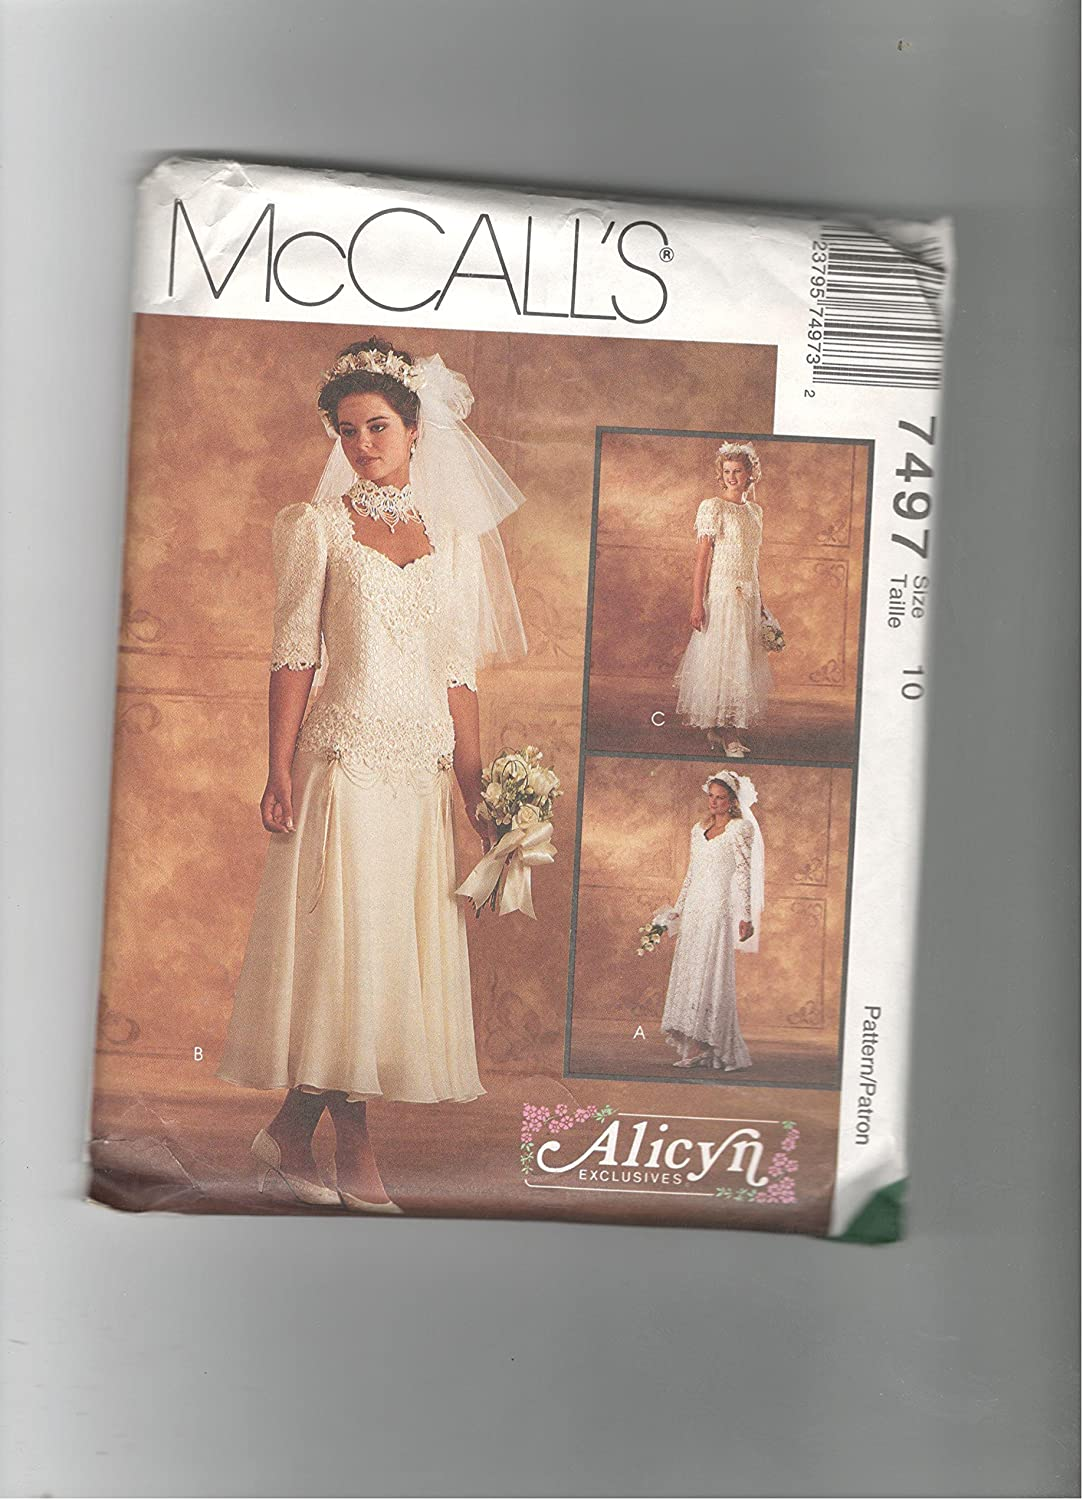 Mccalls 7497 Sewing Pattern For Misses 10 Alicyn Drop Waist Lace Or Sheer Overlay Hathered Skirt And Sleeve Option Bridal Gowns Wedding Dress Bridesmaid Dress Mccalls Home Kitchen